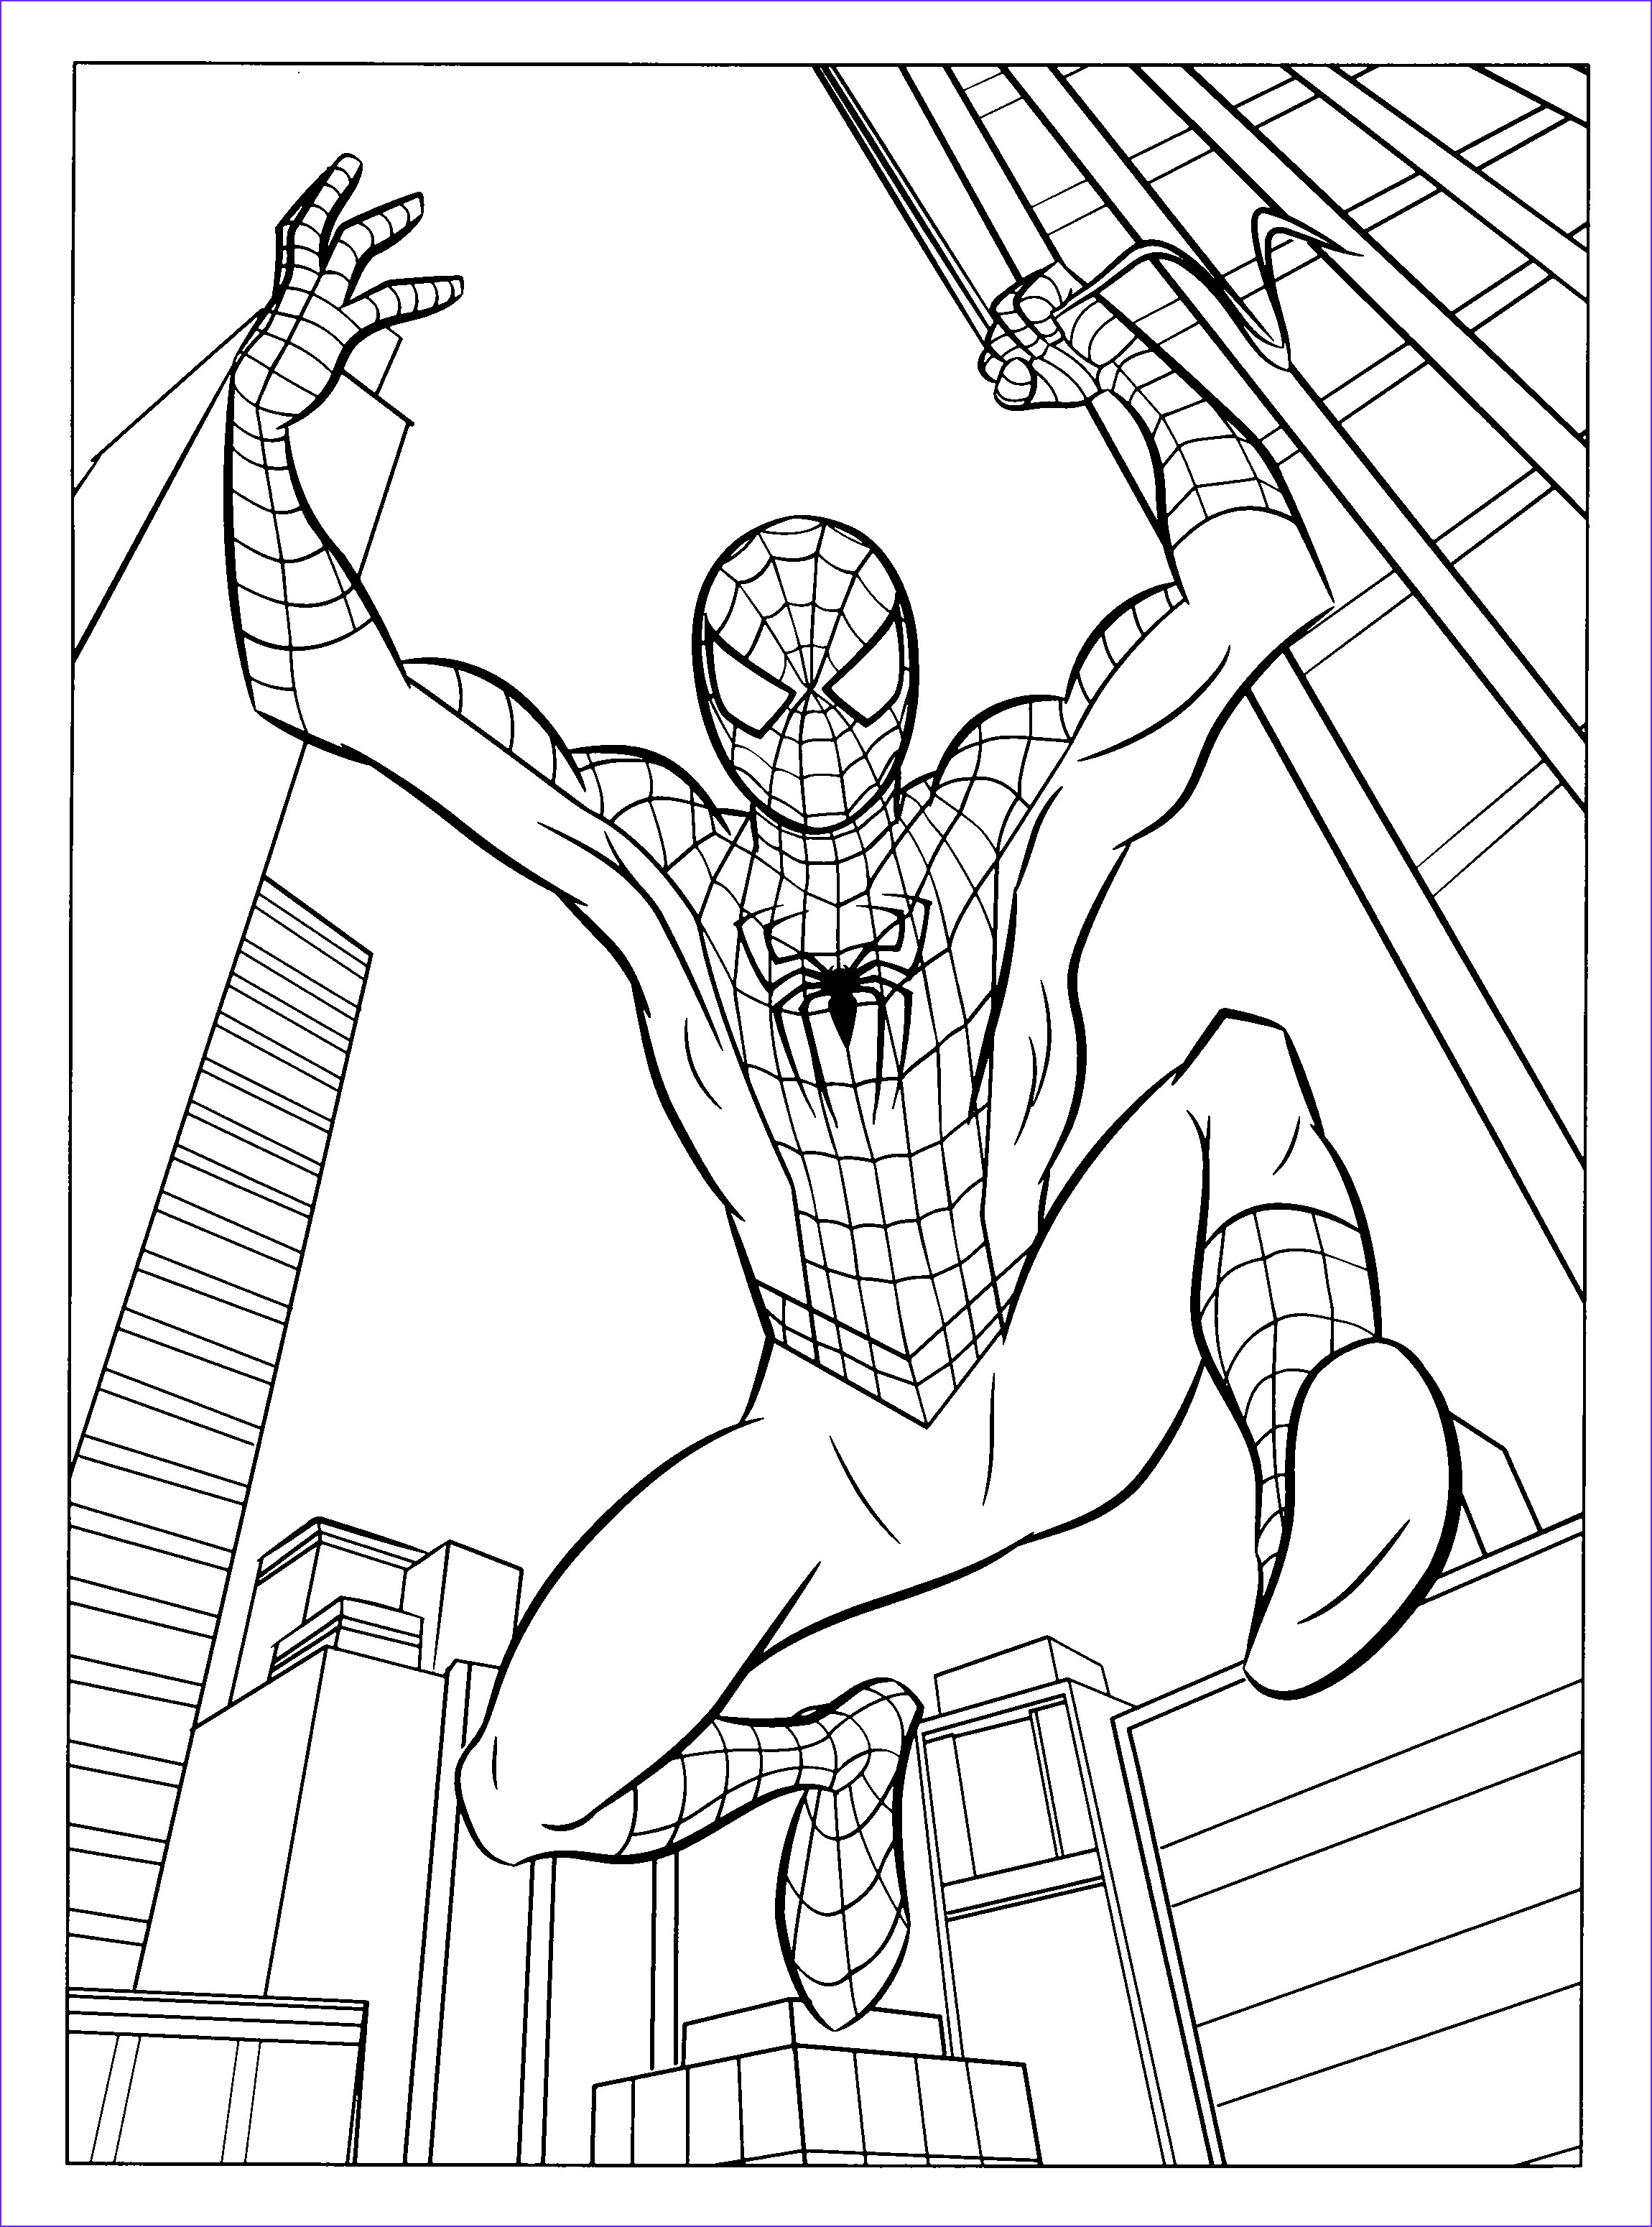 Spiderman Coloring Beautiful Image Free Printable Spiderman Coloring Pages for Kids